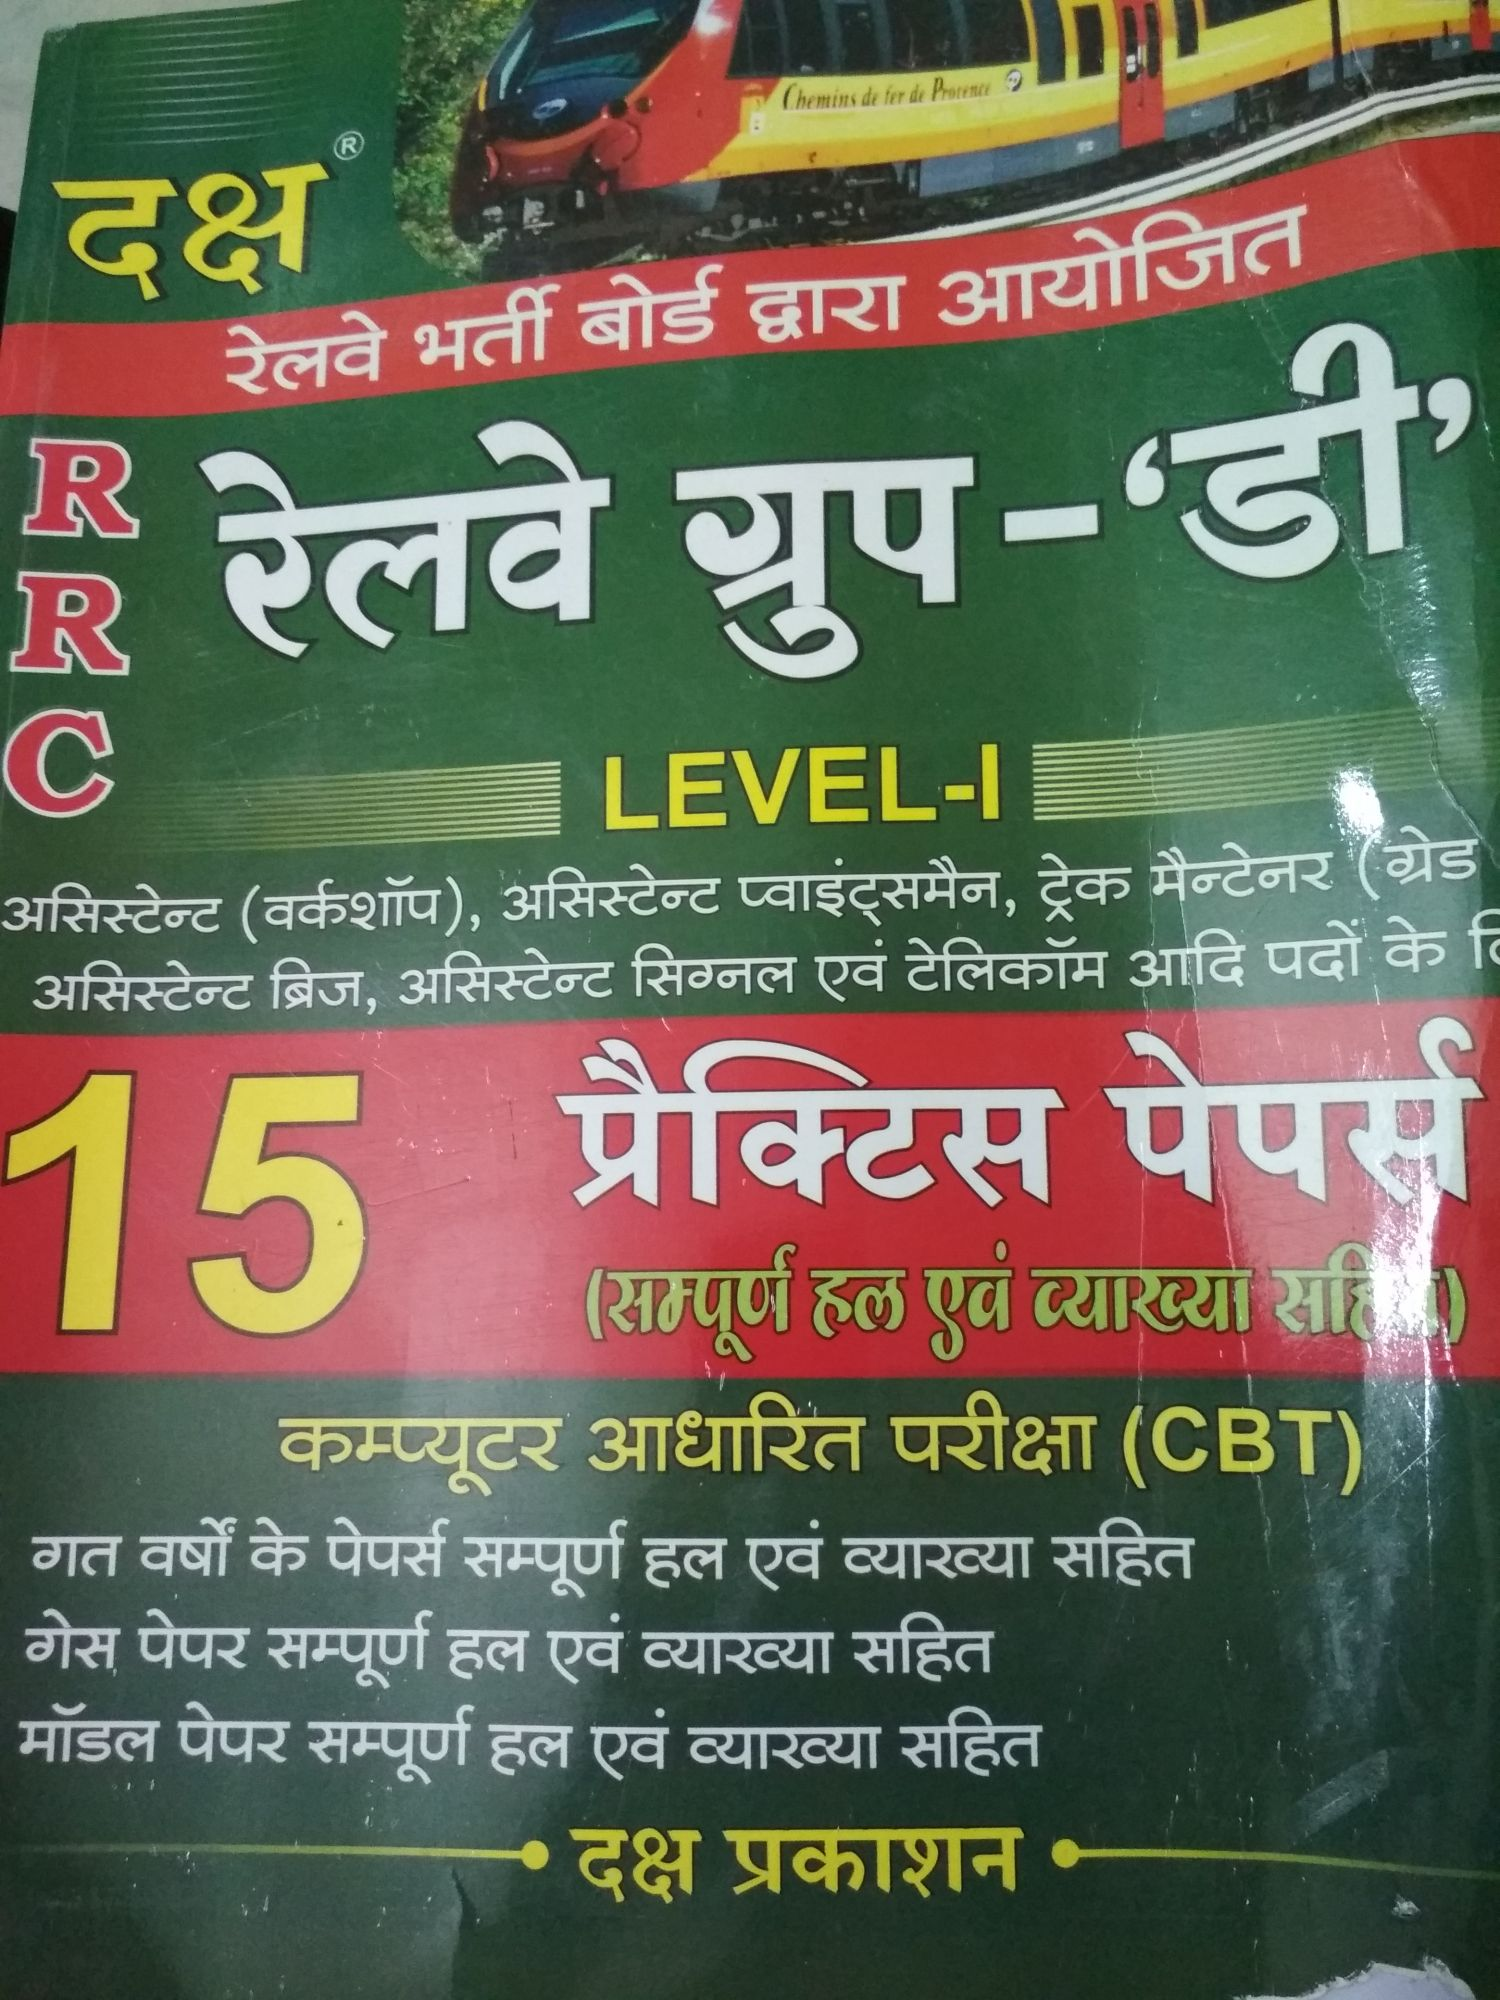 Rrb Railway Group D Book 15 Practice Test Paper By Daksh  in hindi medium